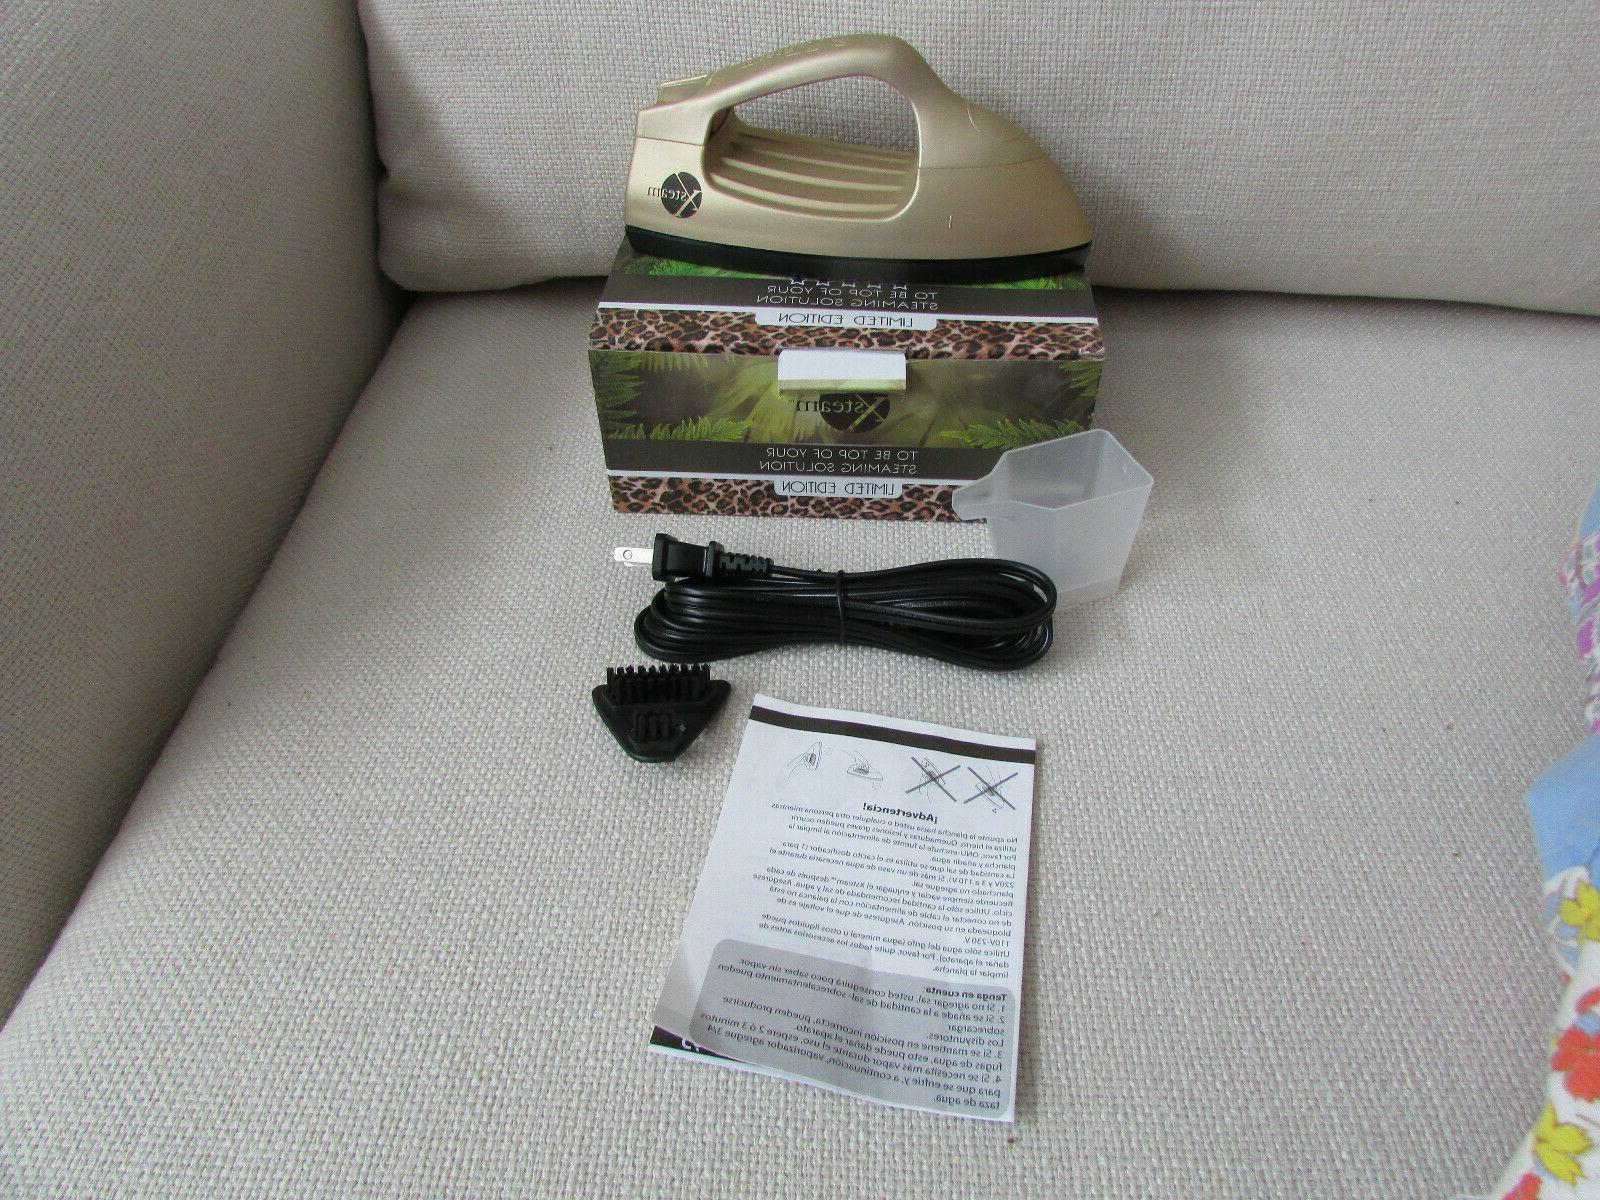 Xsteam Leopard Garment Professional Steamer Travel Edition In